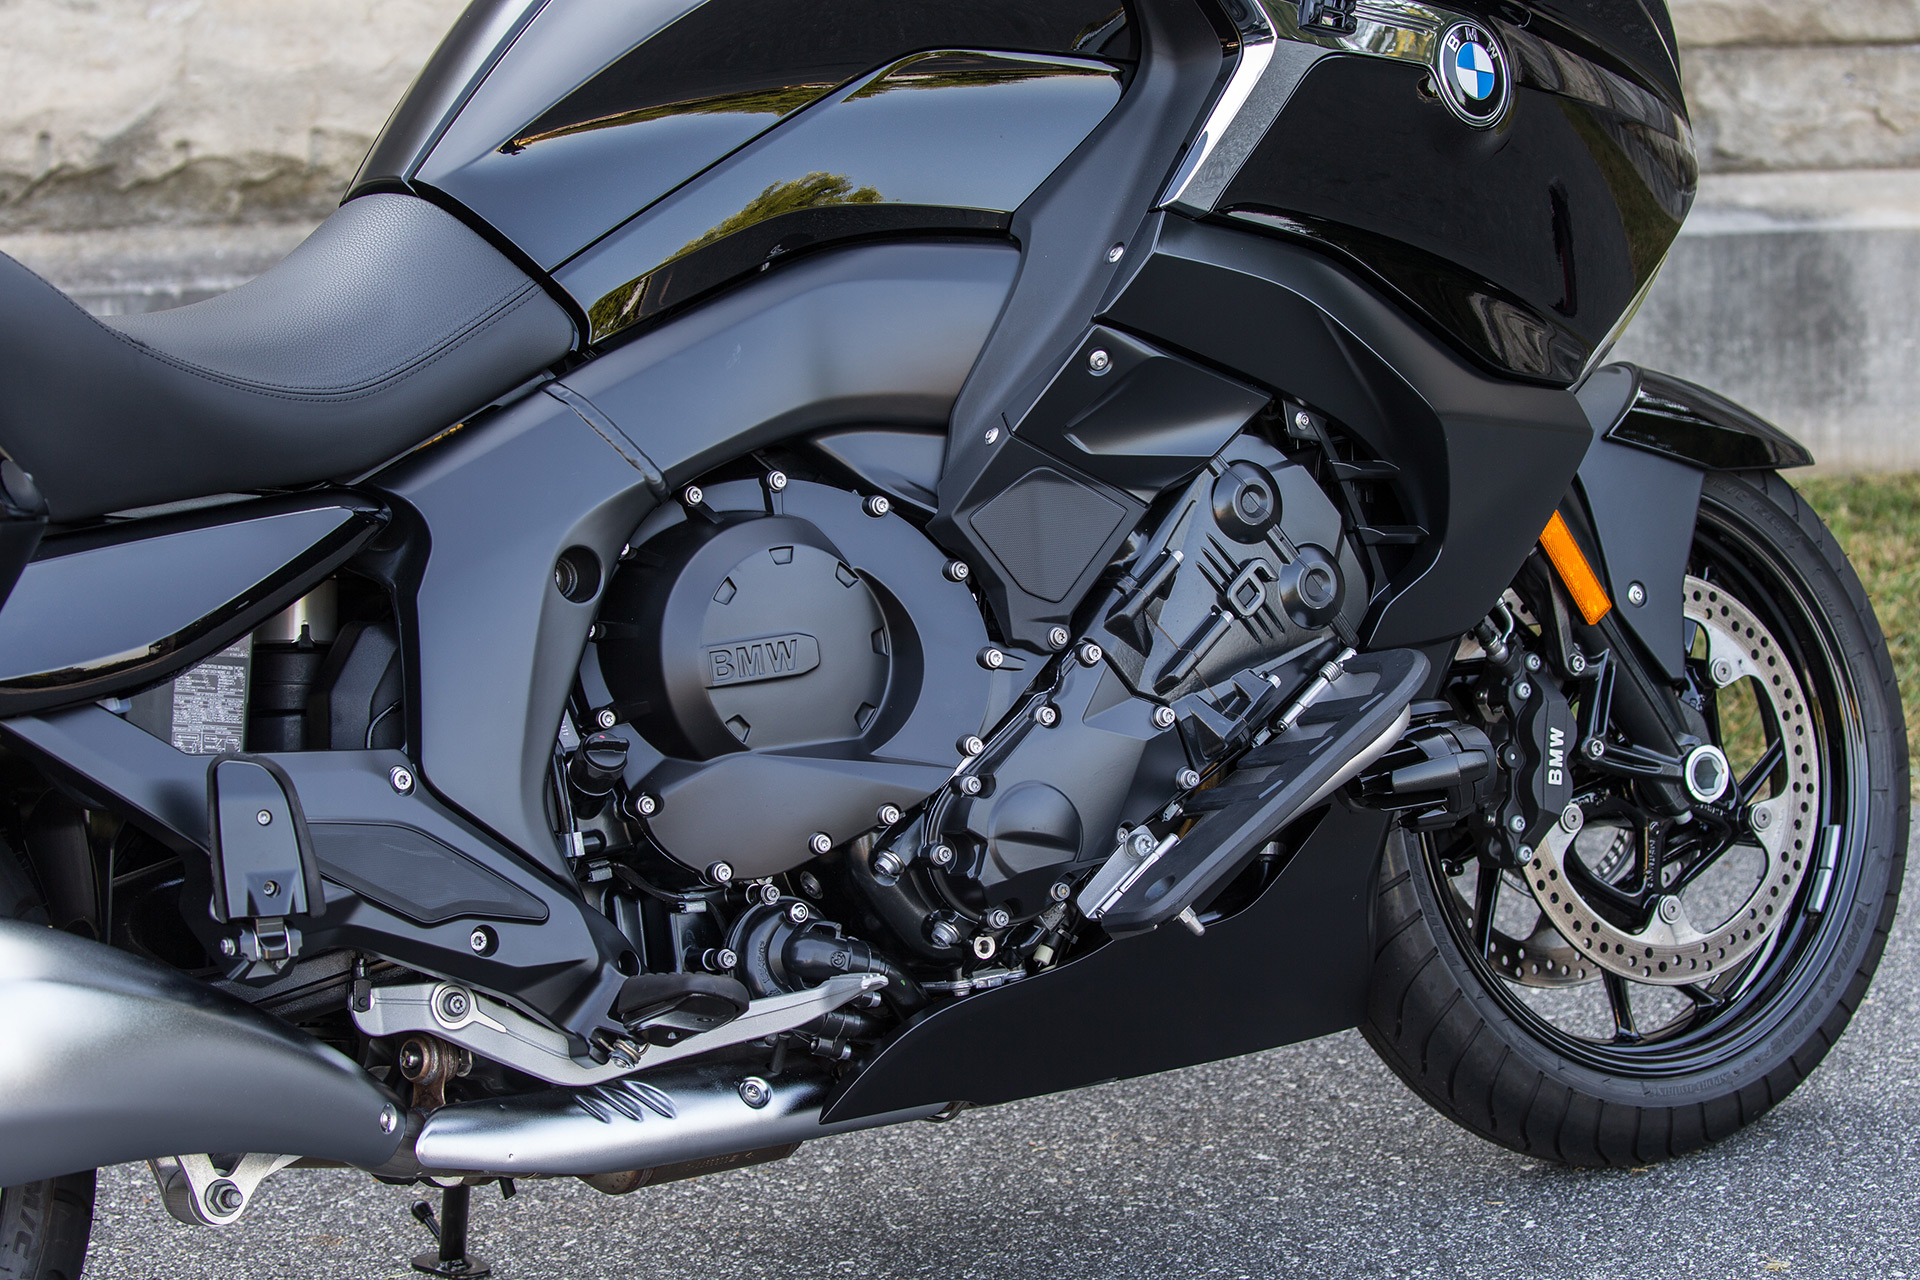 2018 BMW K1600B Review- Touring Bagger | Cycle World